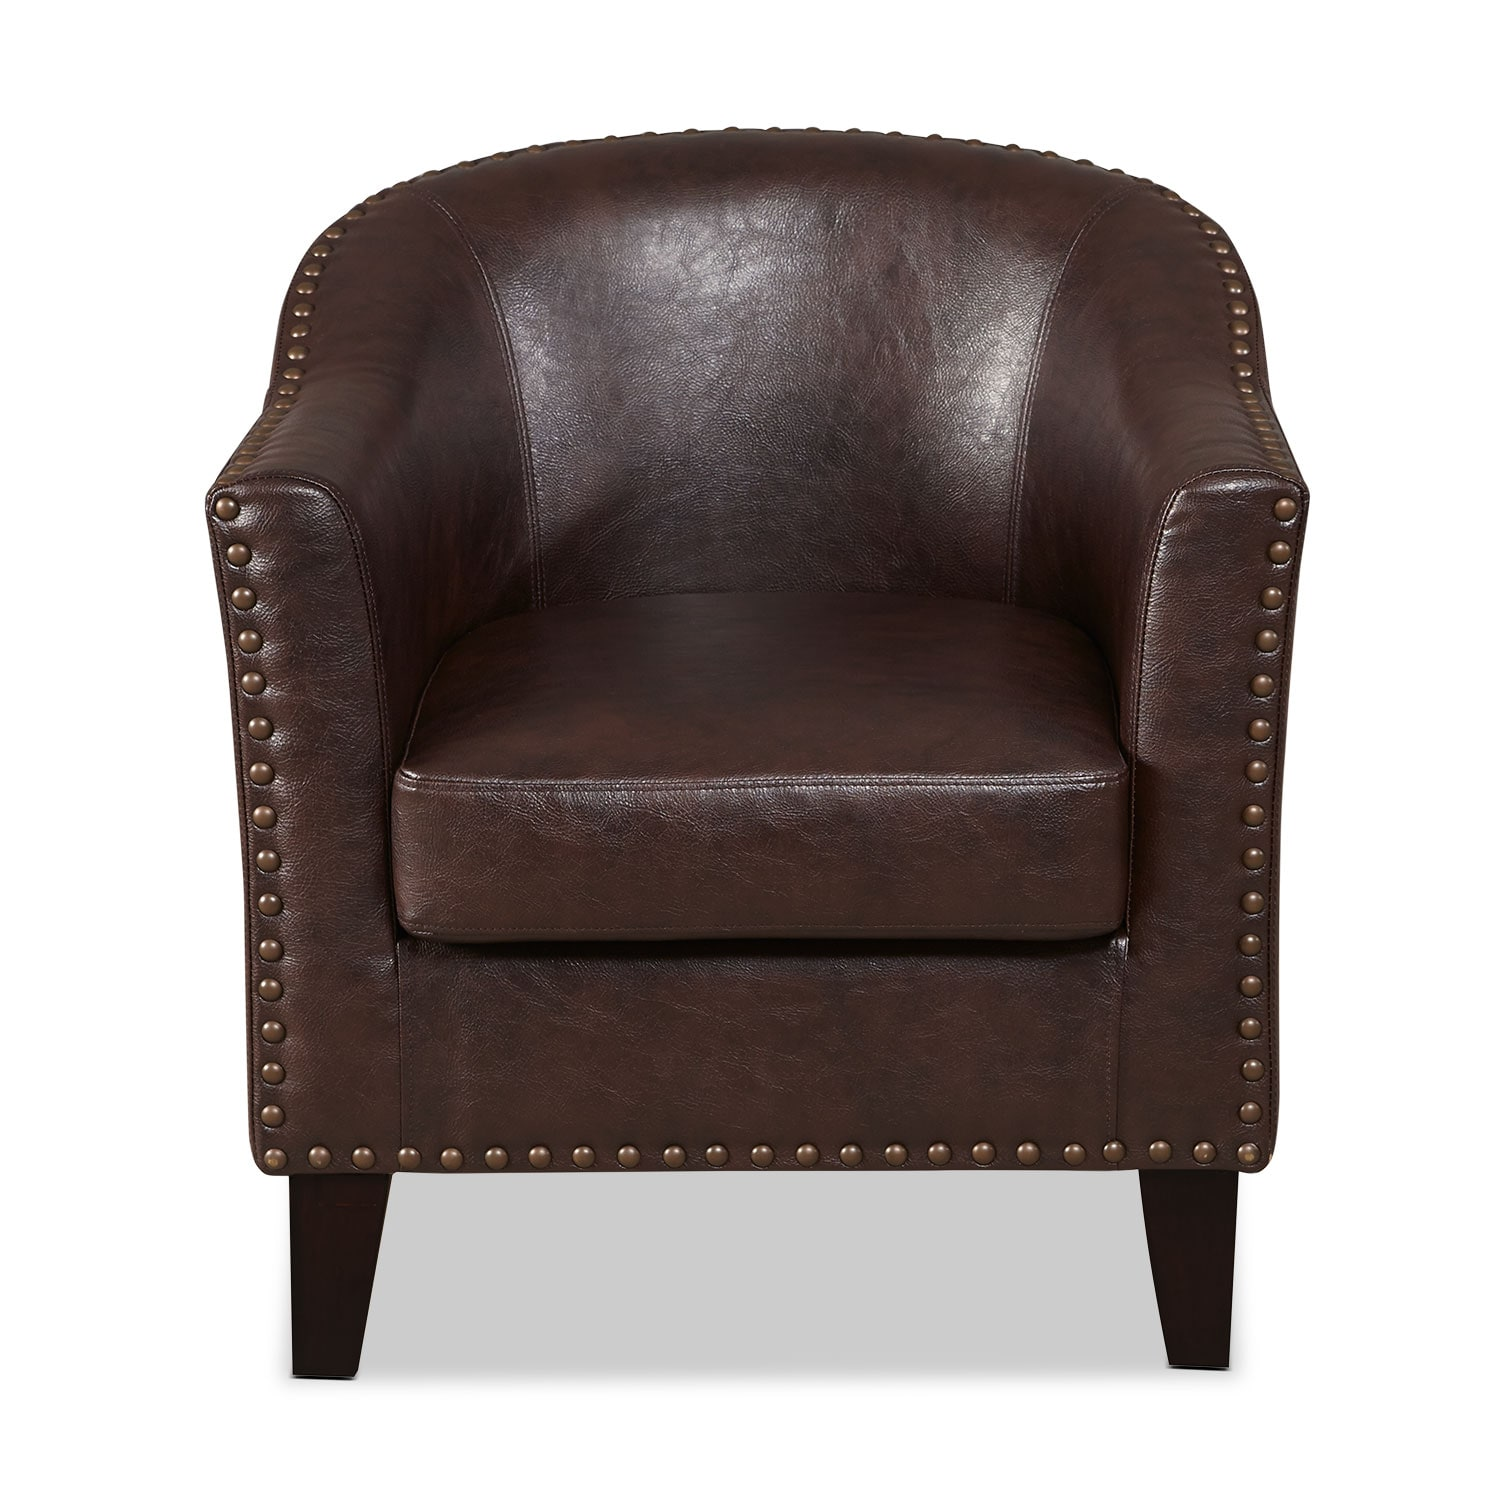 Brown Accent Chairs Brogan Accent Chair Brown Value City Furniture